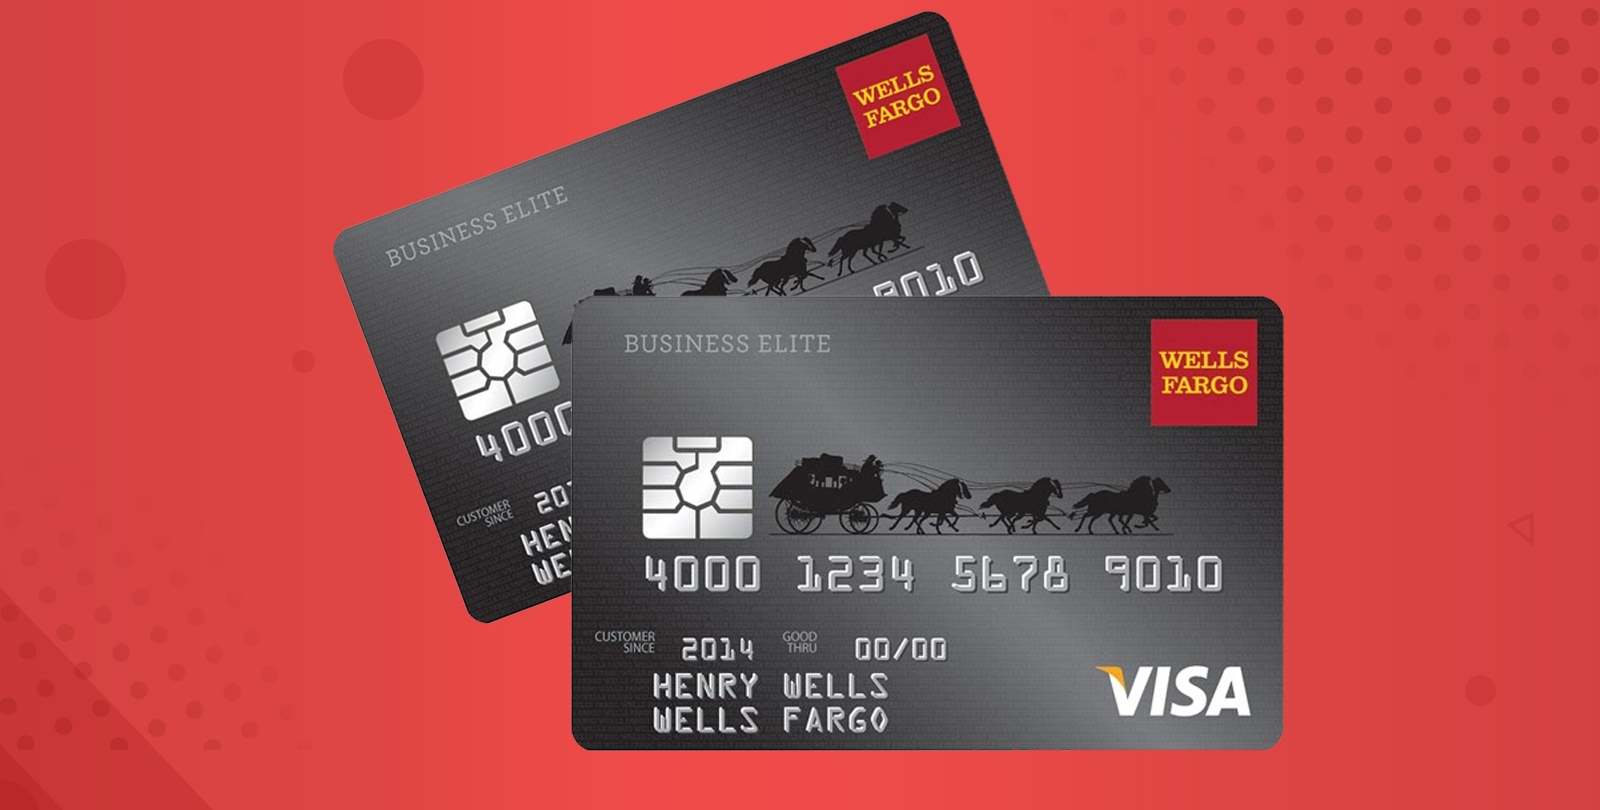 Capital One® Spark® Miles Select for Business - Top10 credit cards